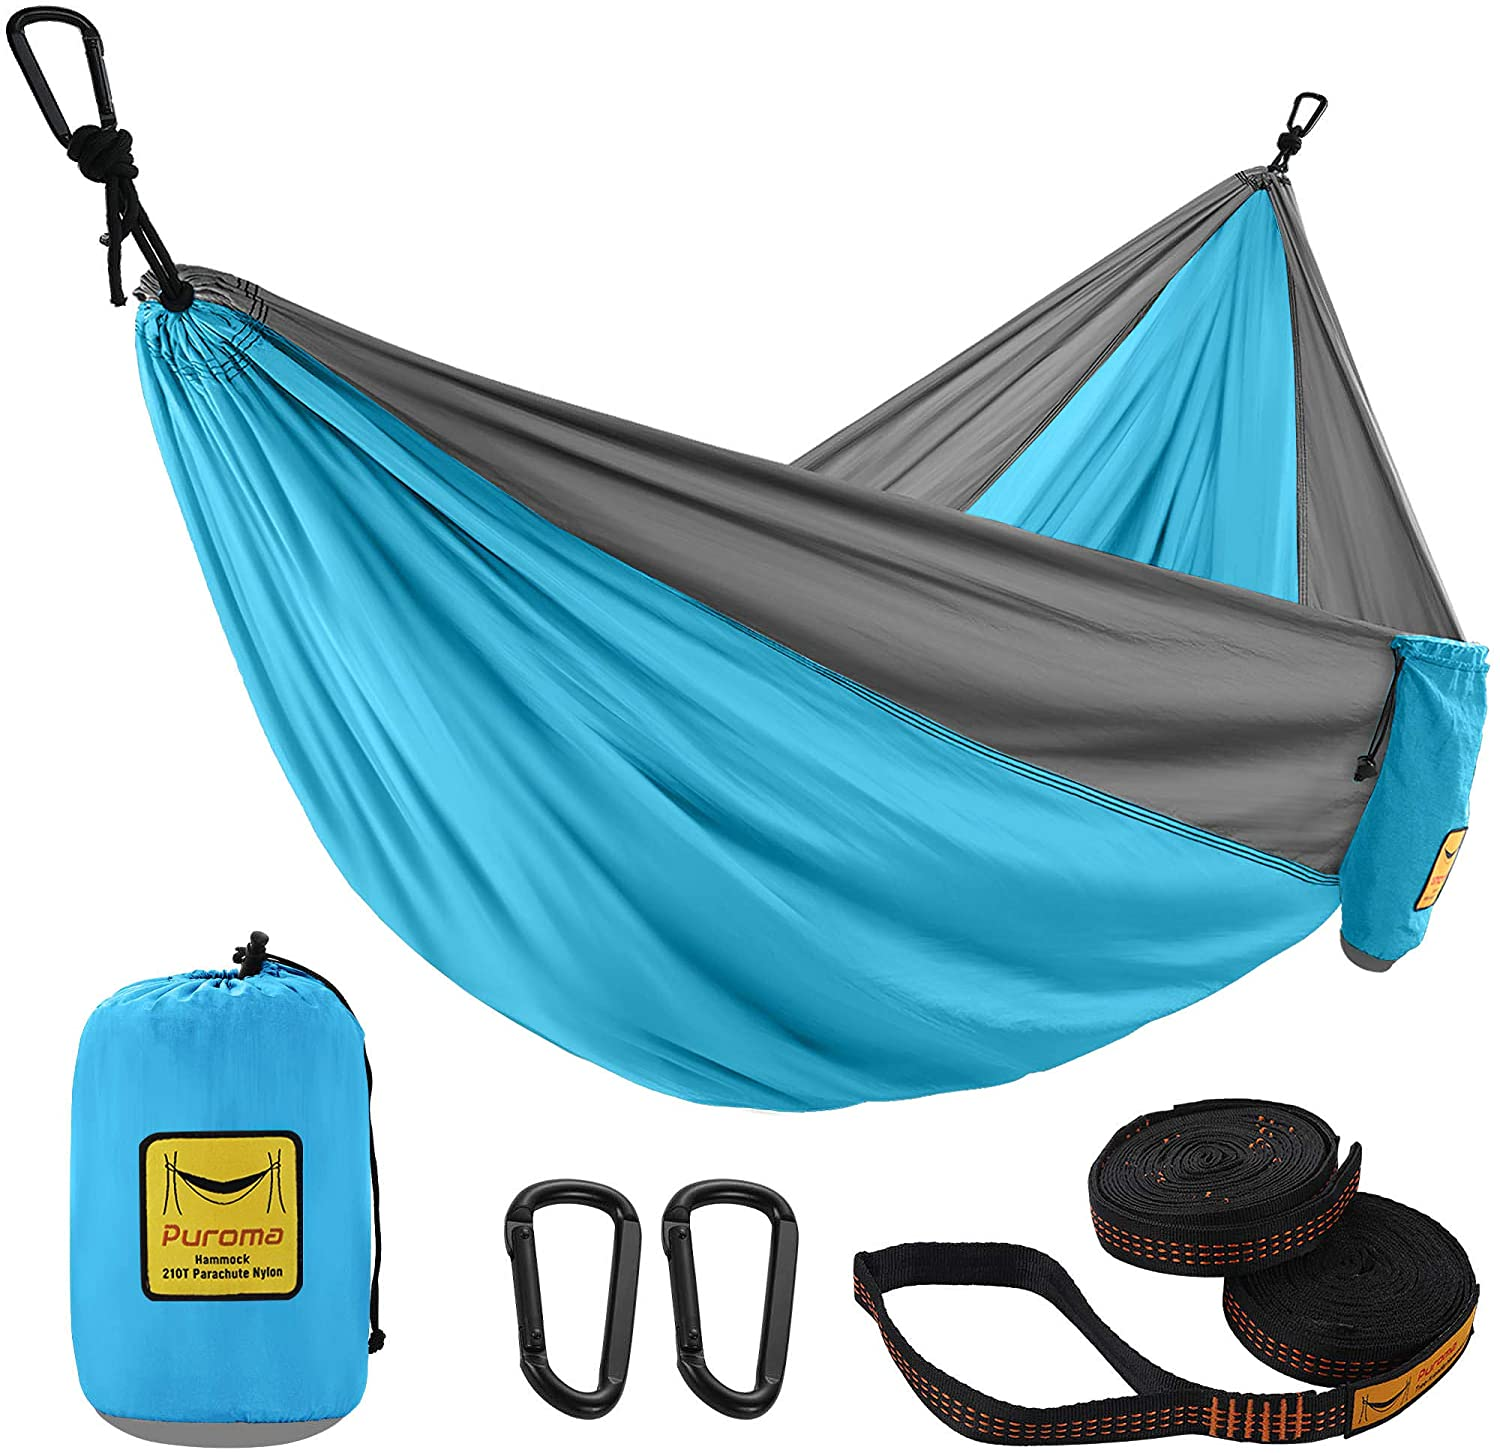 Puroma Camping Today's only Hammock Single Portable Double Ultralig Credence